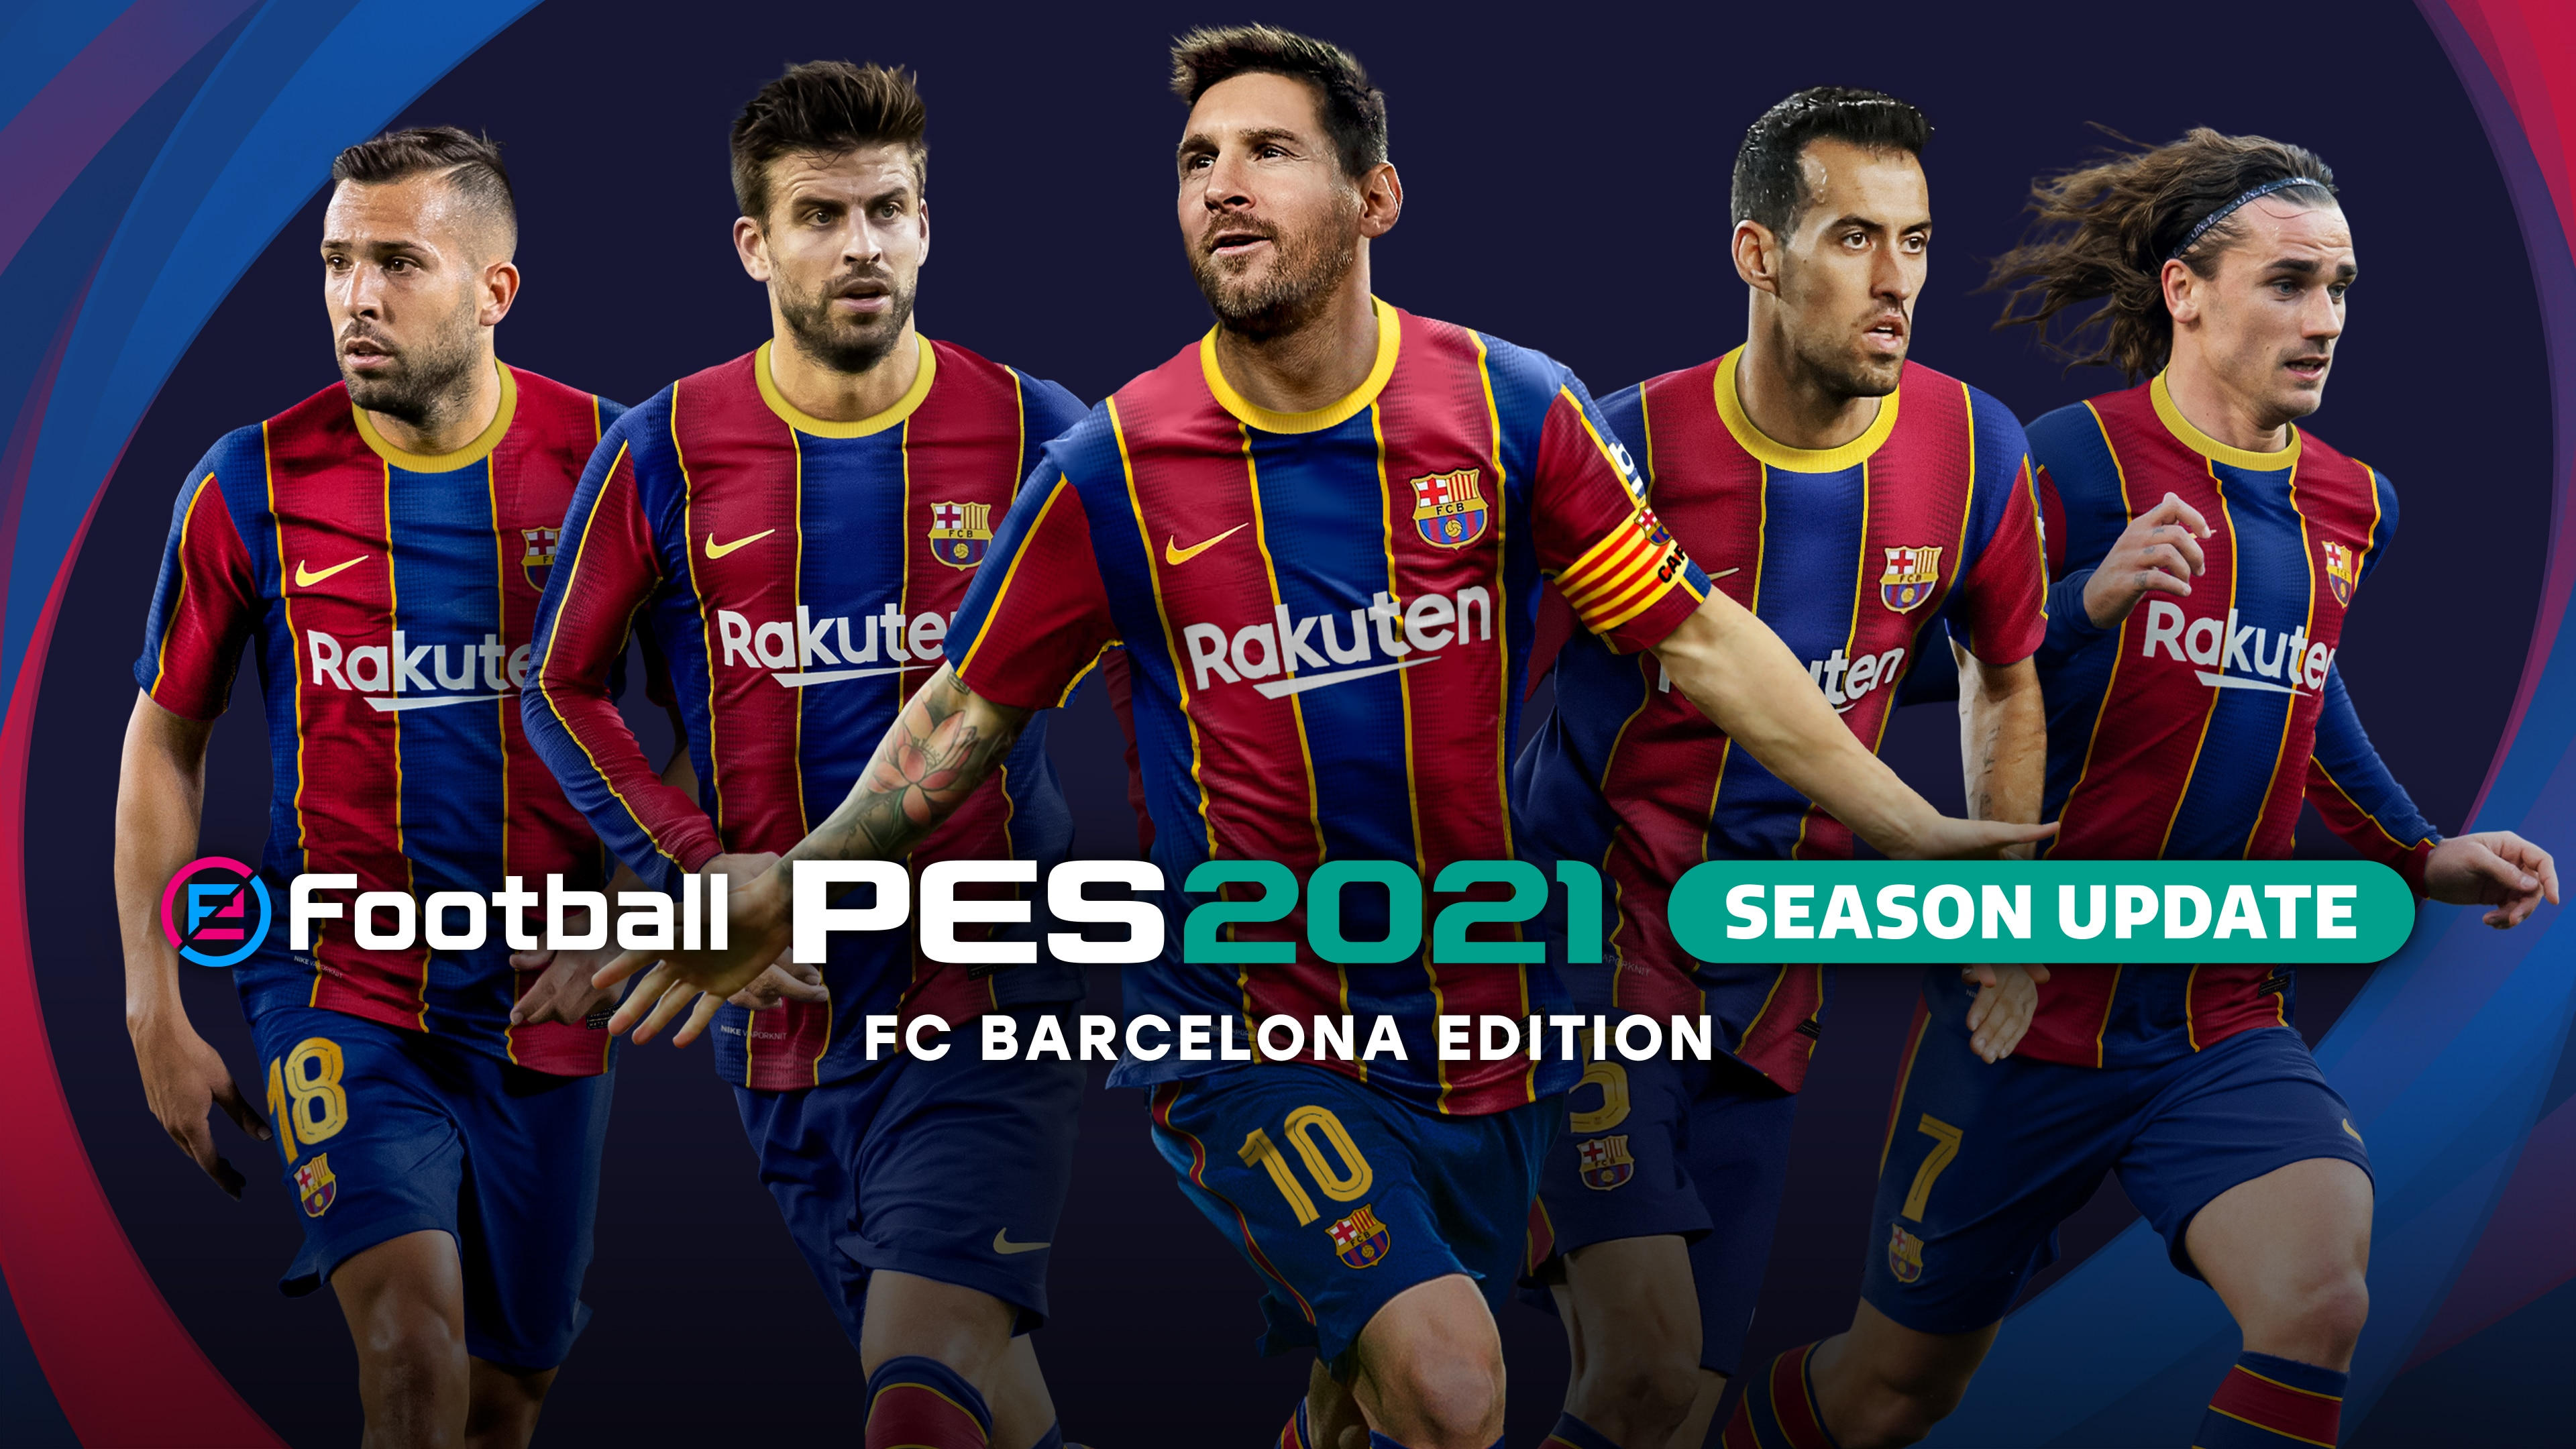 efootball pes 2021 season update fc barcelona edition efootball pes 2021 season update fc barcelona edition